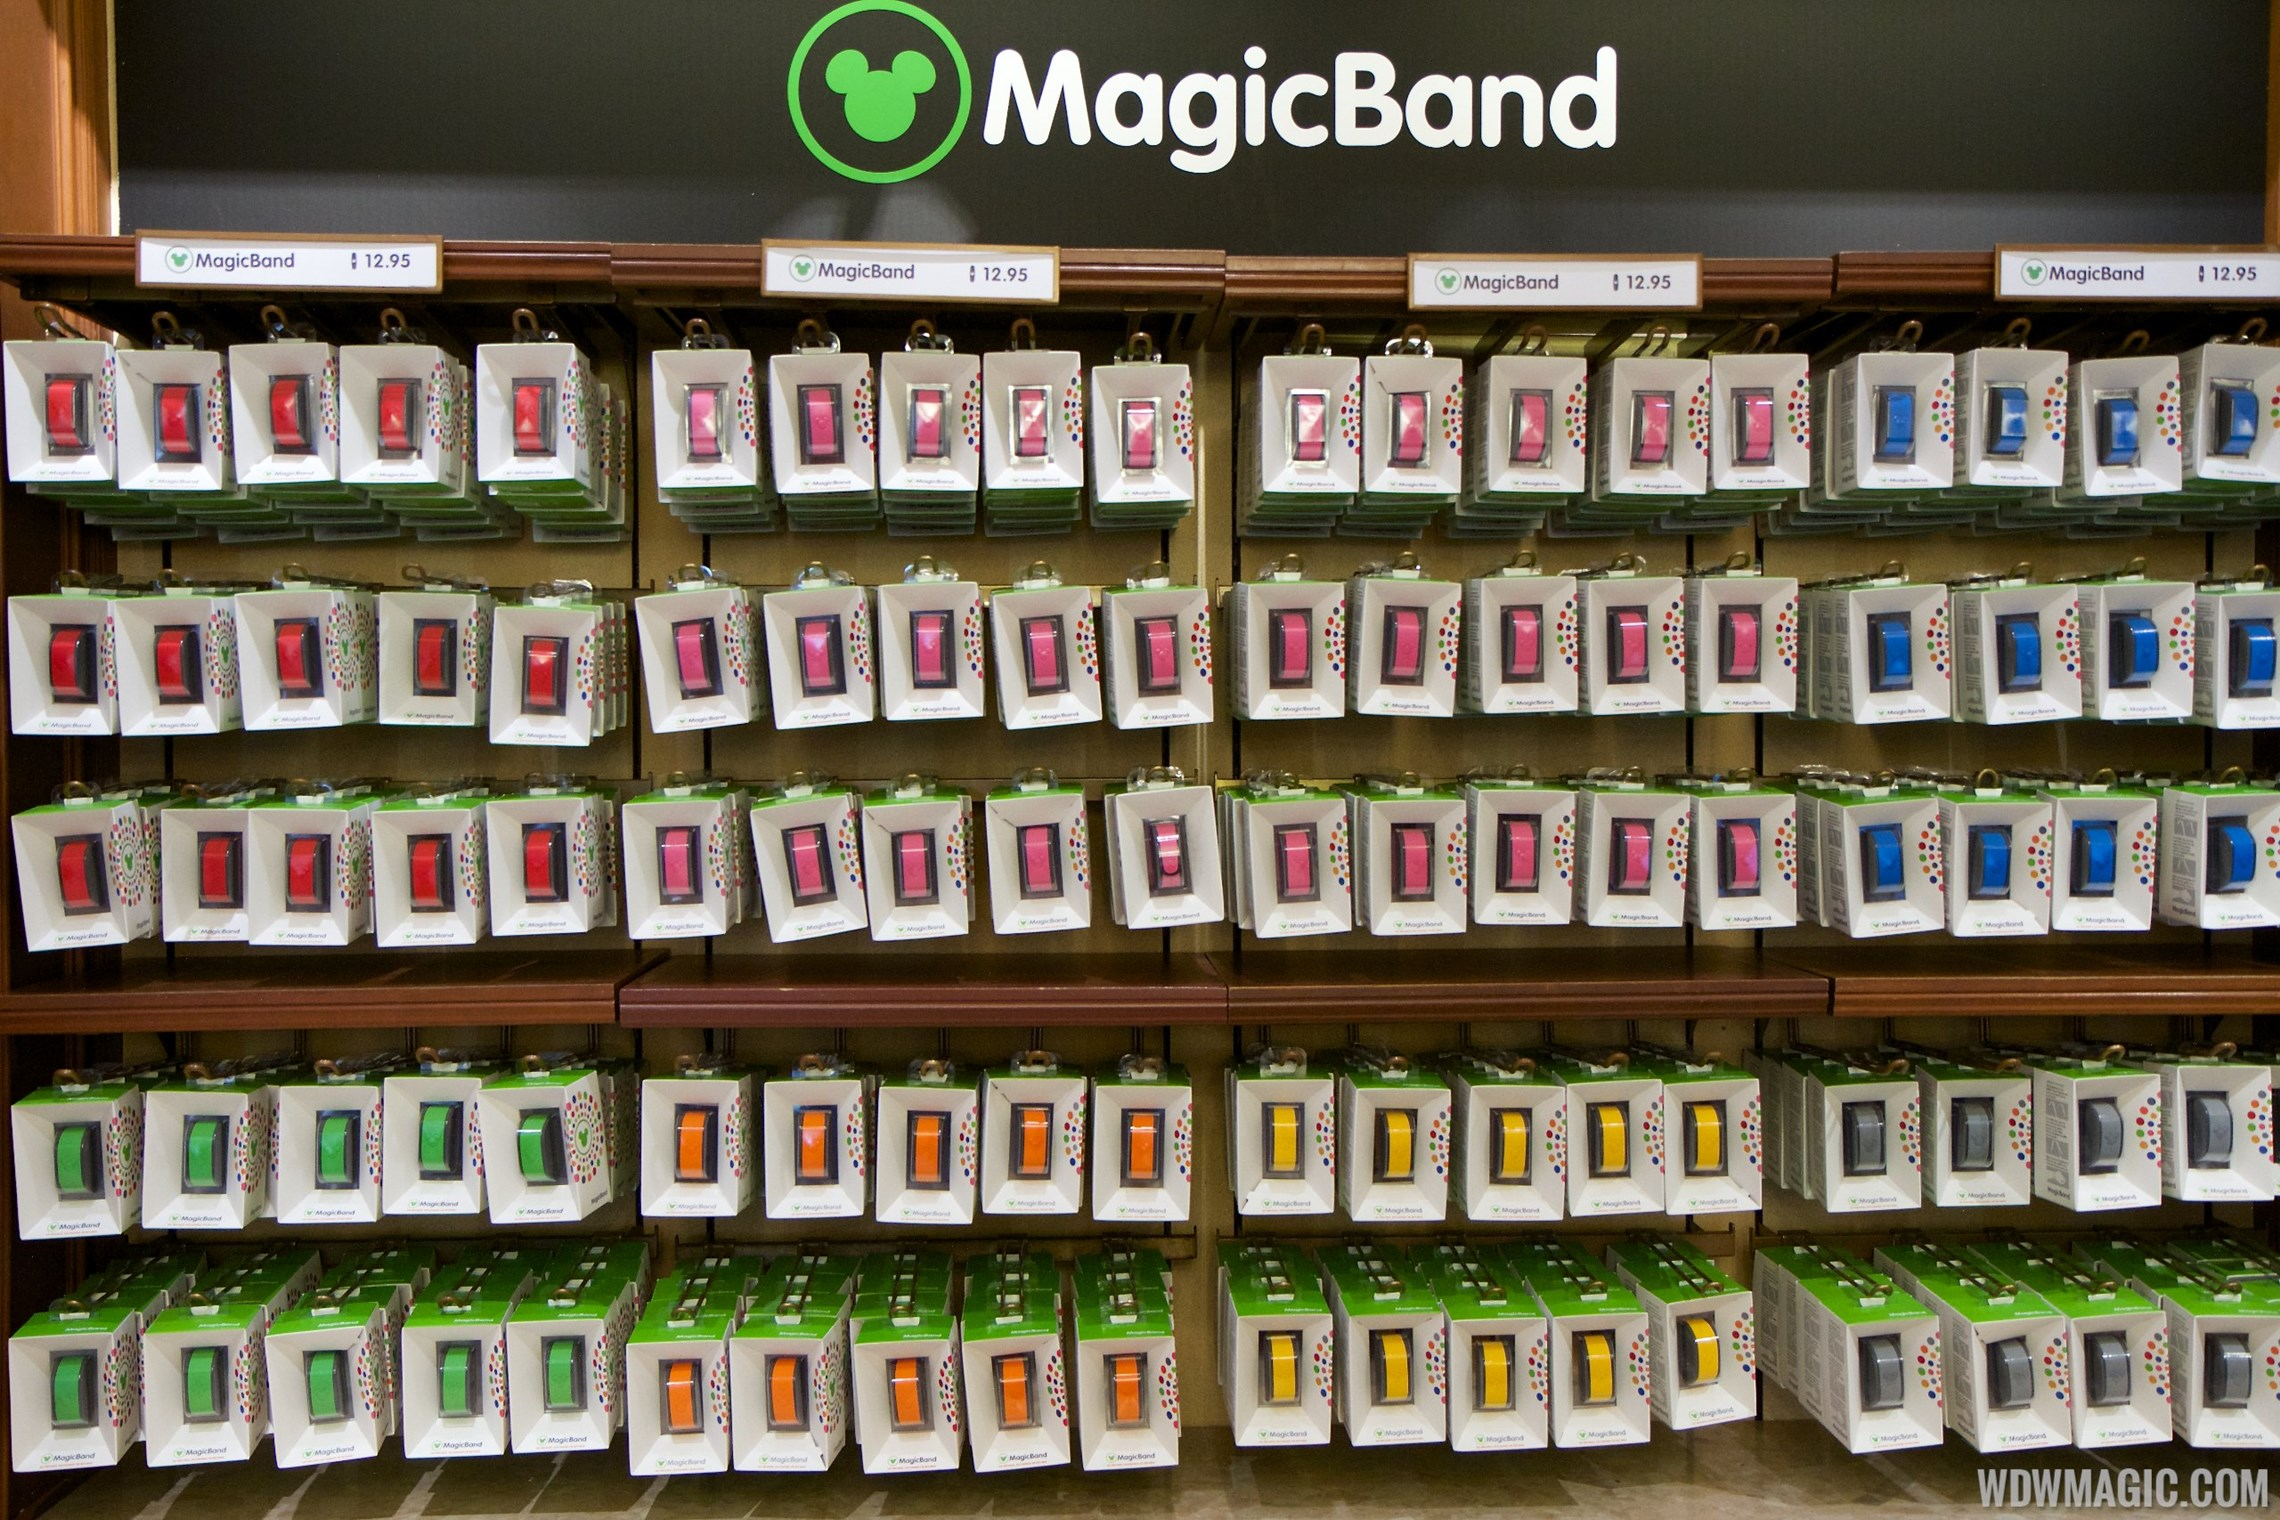 MagicBand retail display at the Magic Kingdom's Emporium